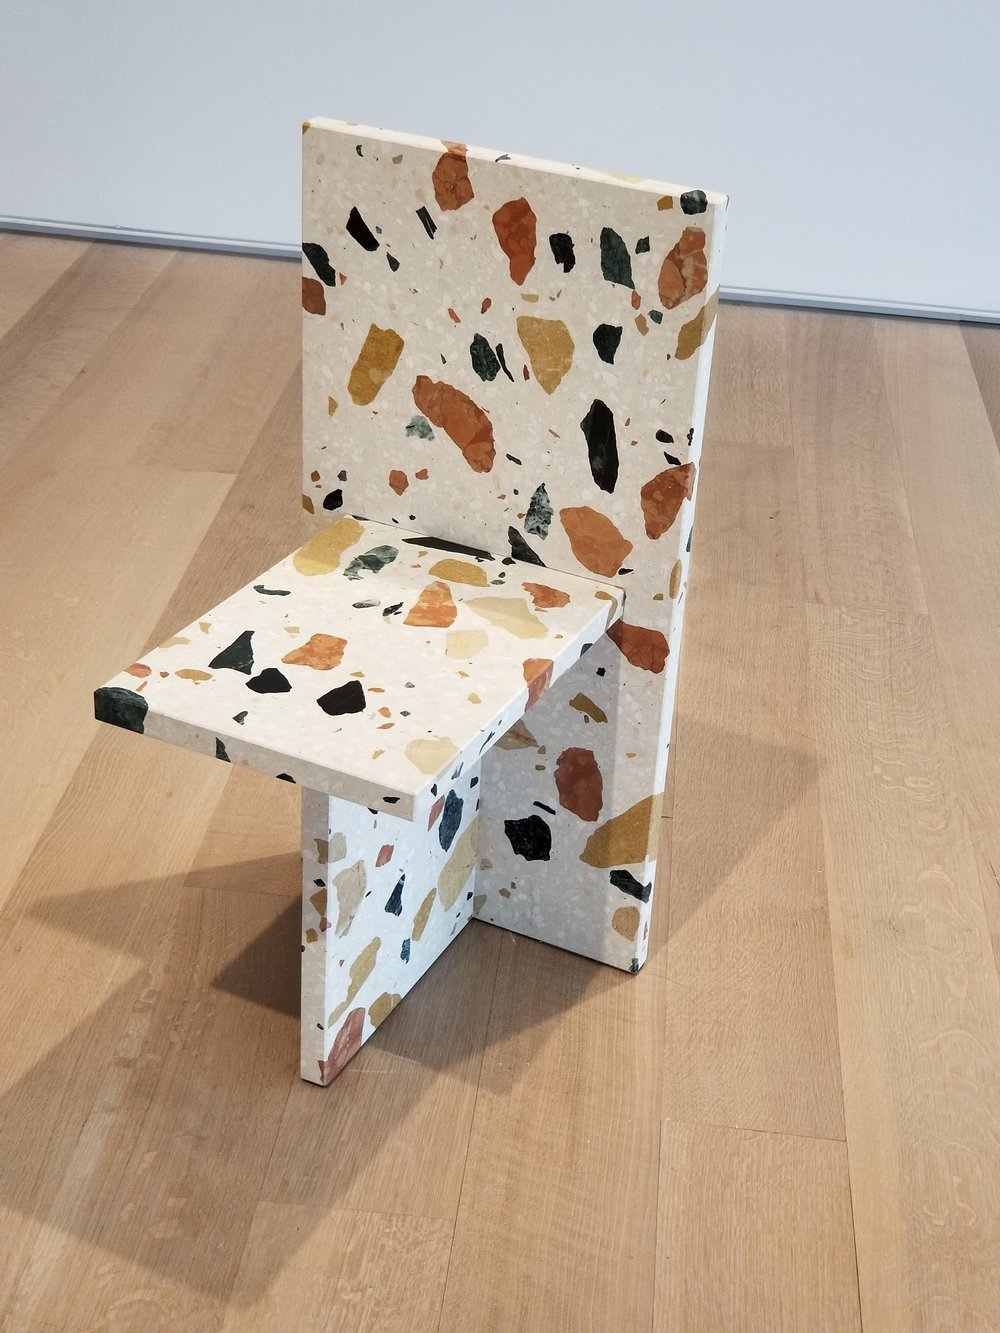 Big fan of this terrazzo chair by Max Lamb in the design & architecture exhibit at the Art Institute.